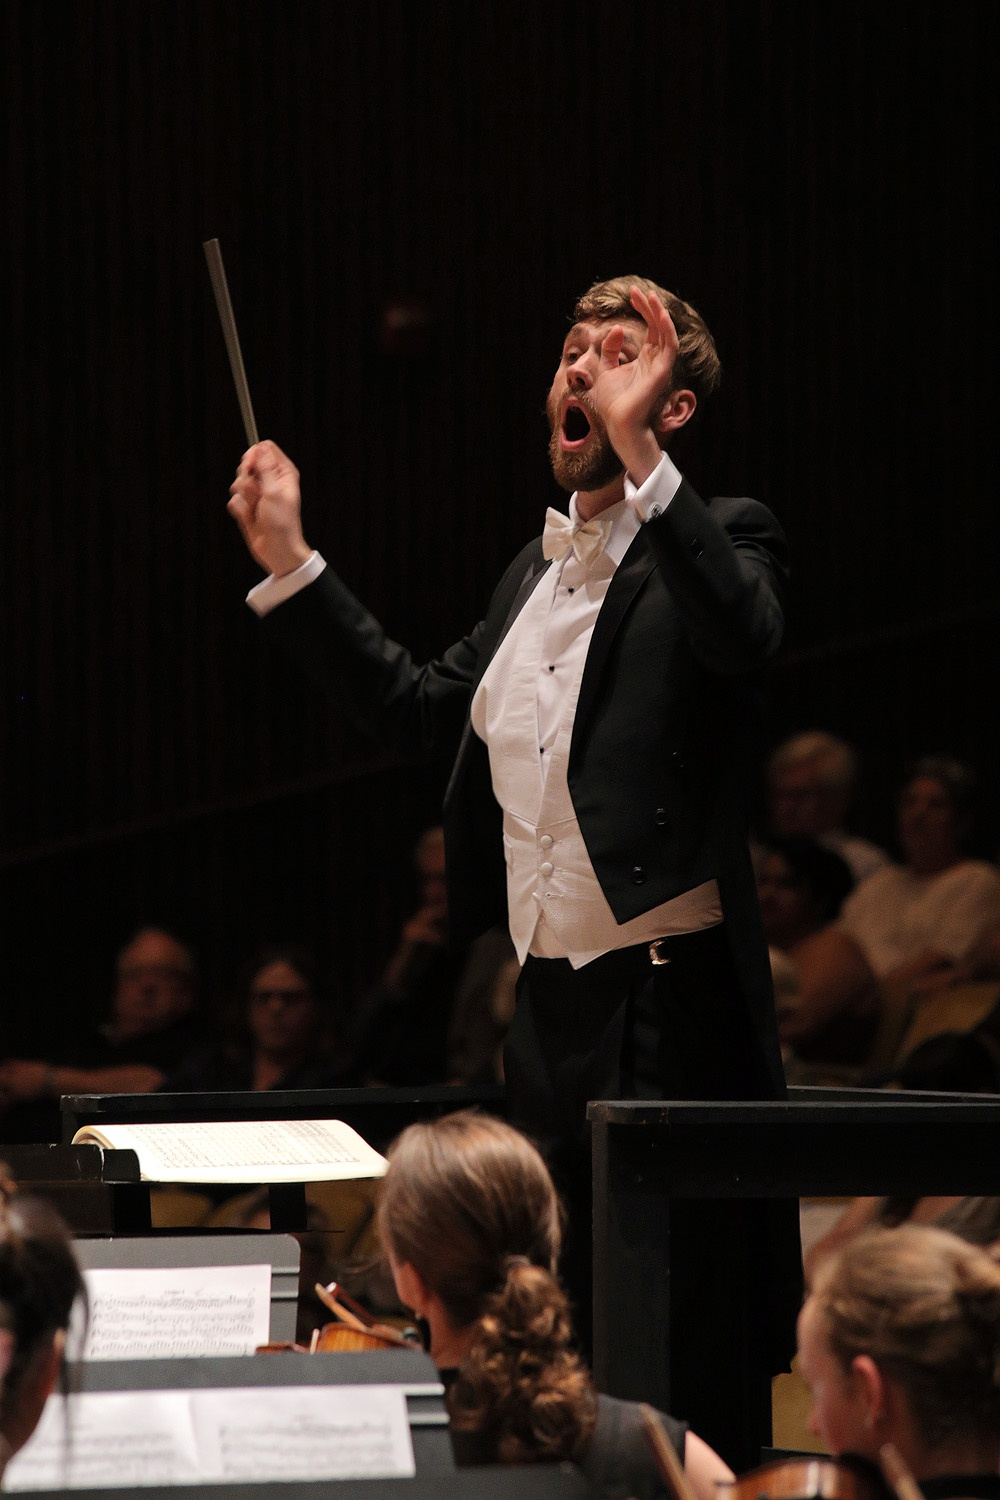 s17-ericB Eric Choate,  Assistant Conductor,  BCCO Spring Concert,  Hertz Hall,  Berkeley, California, 2017